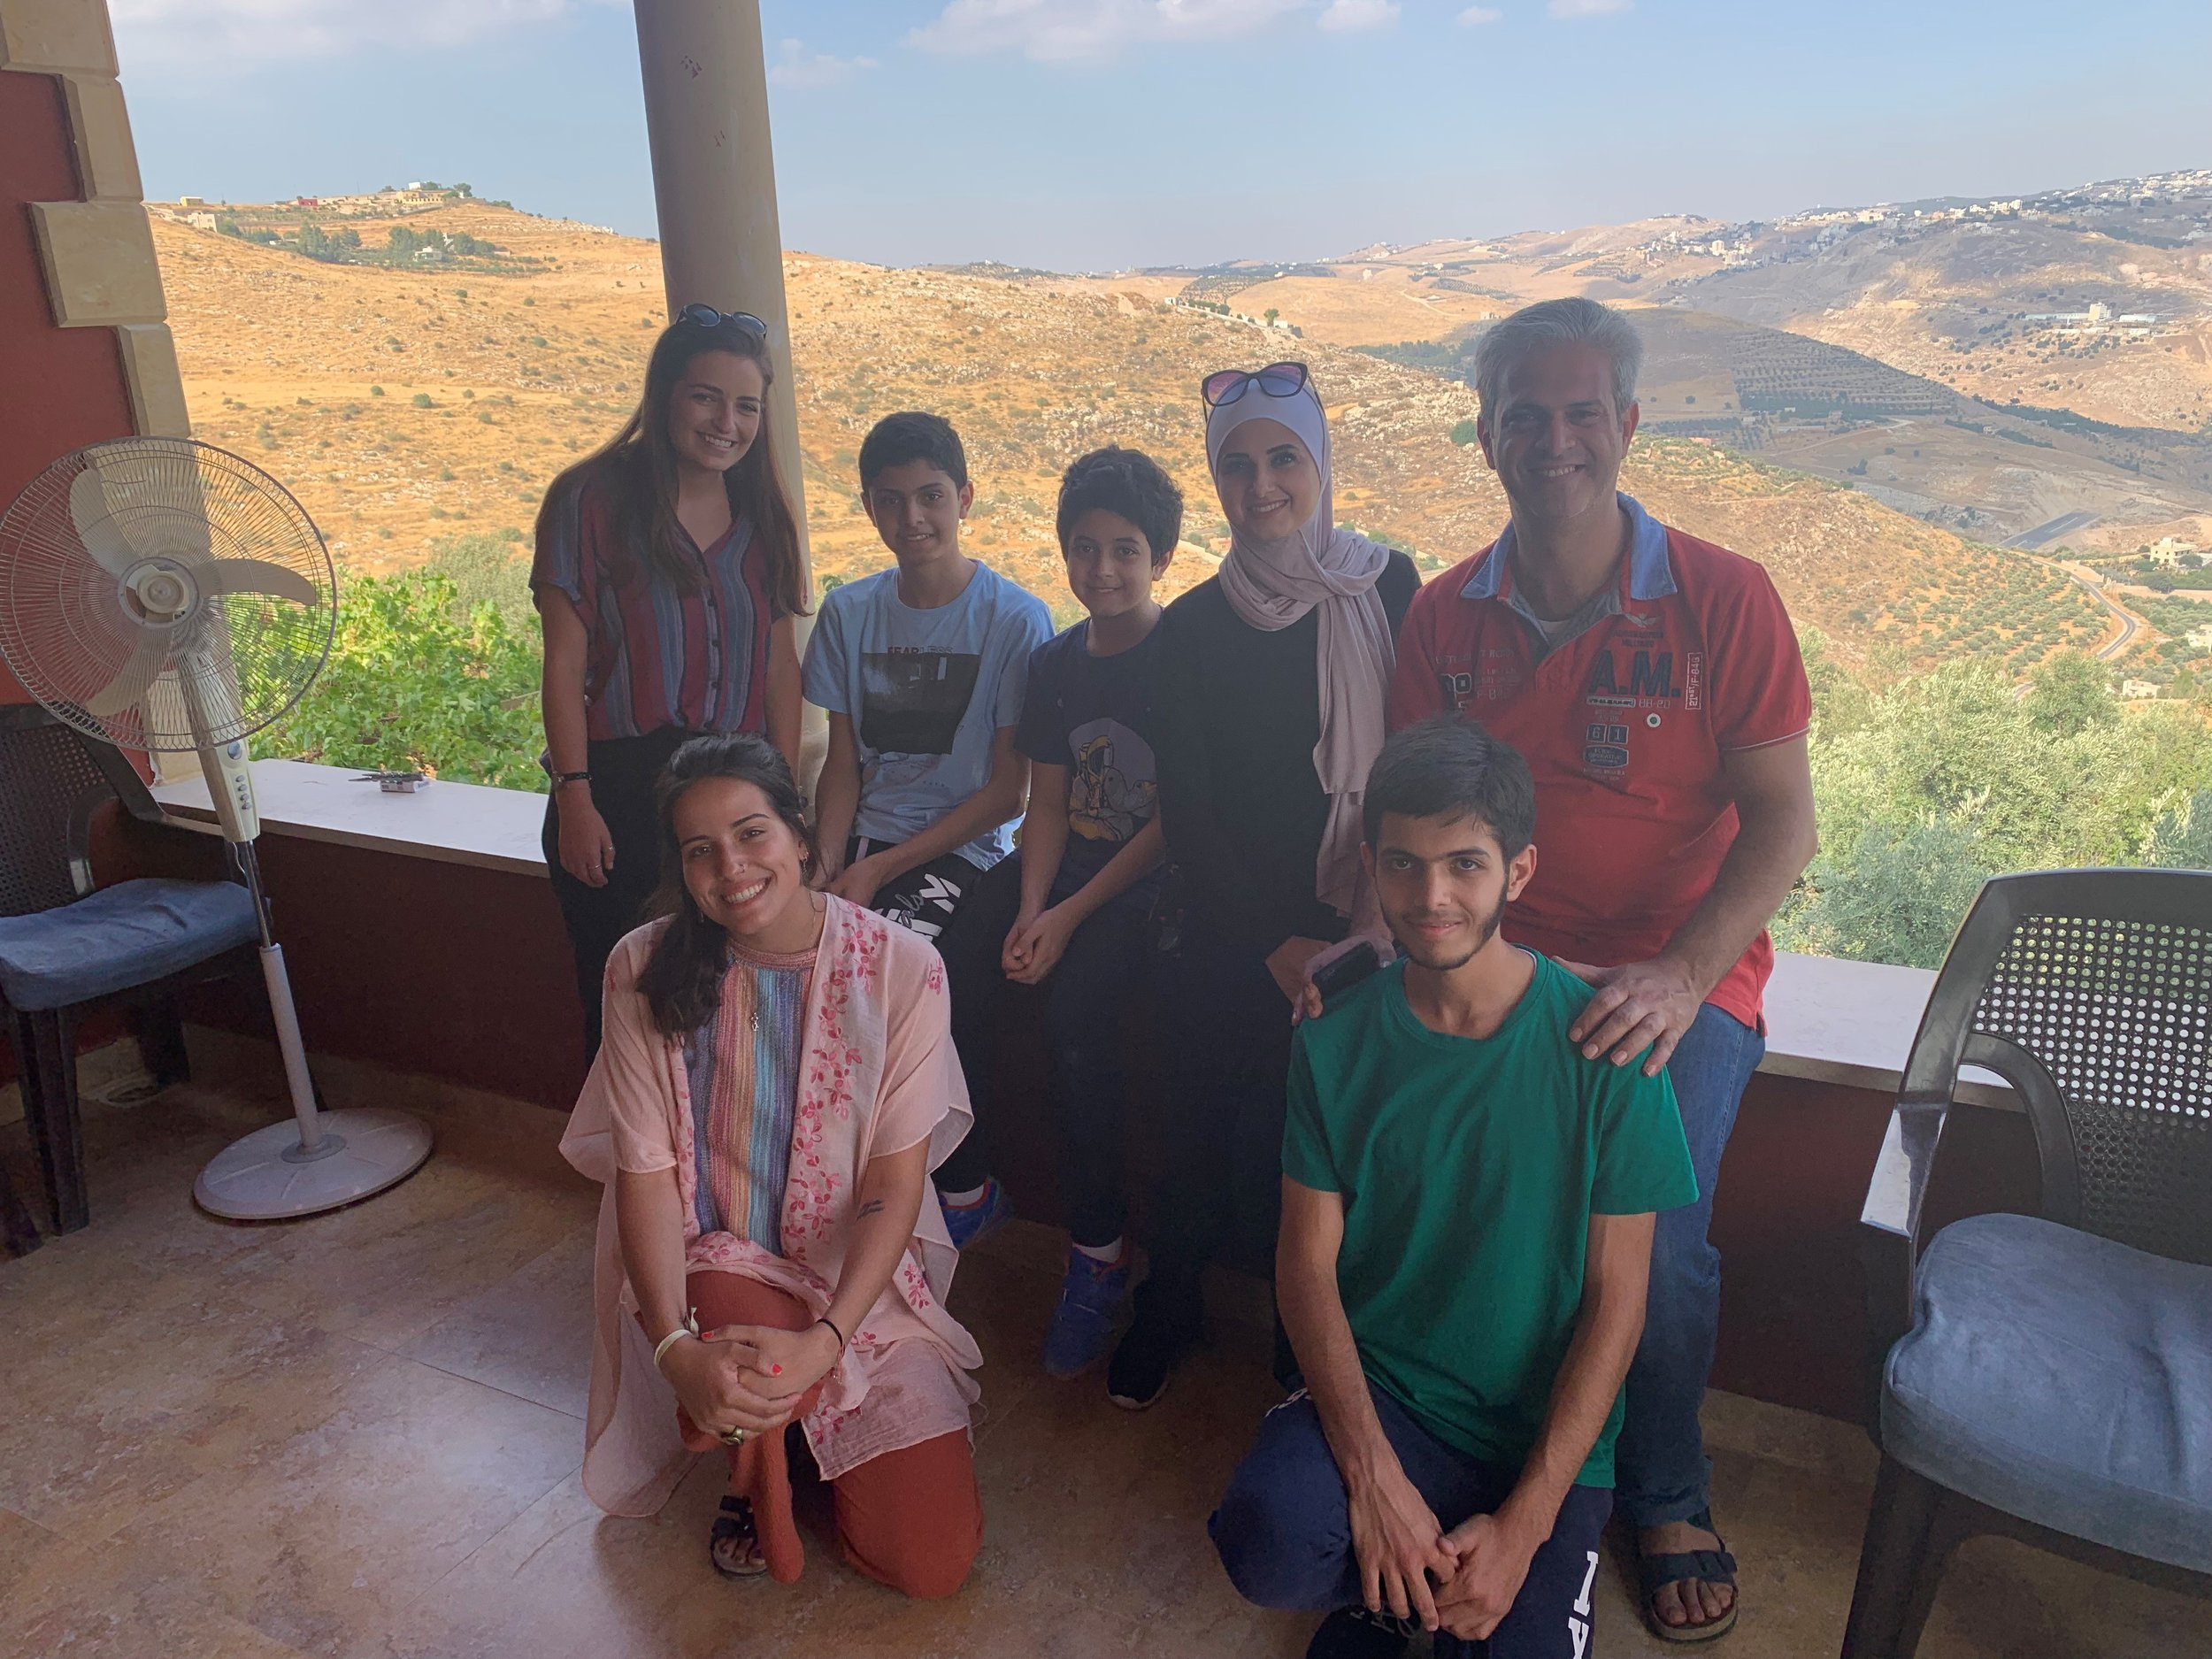 Me and my host family at the mountain house in As-Salt. Photo credit: Russo, 2019